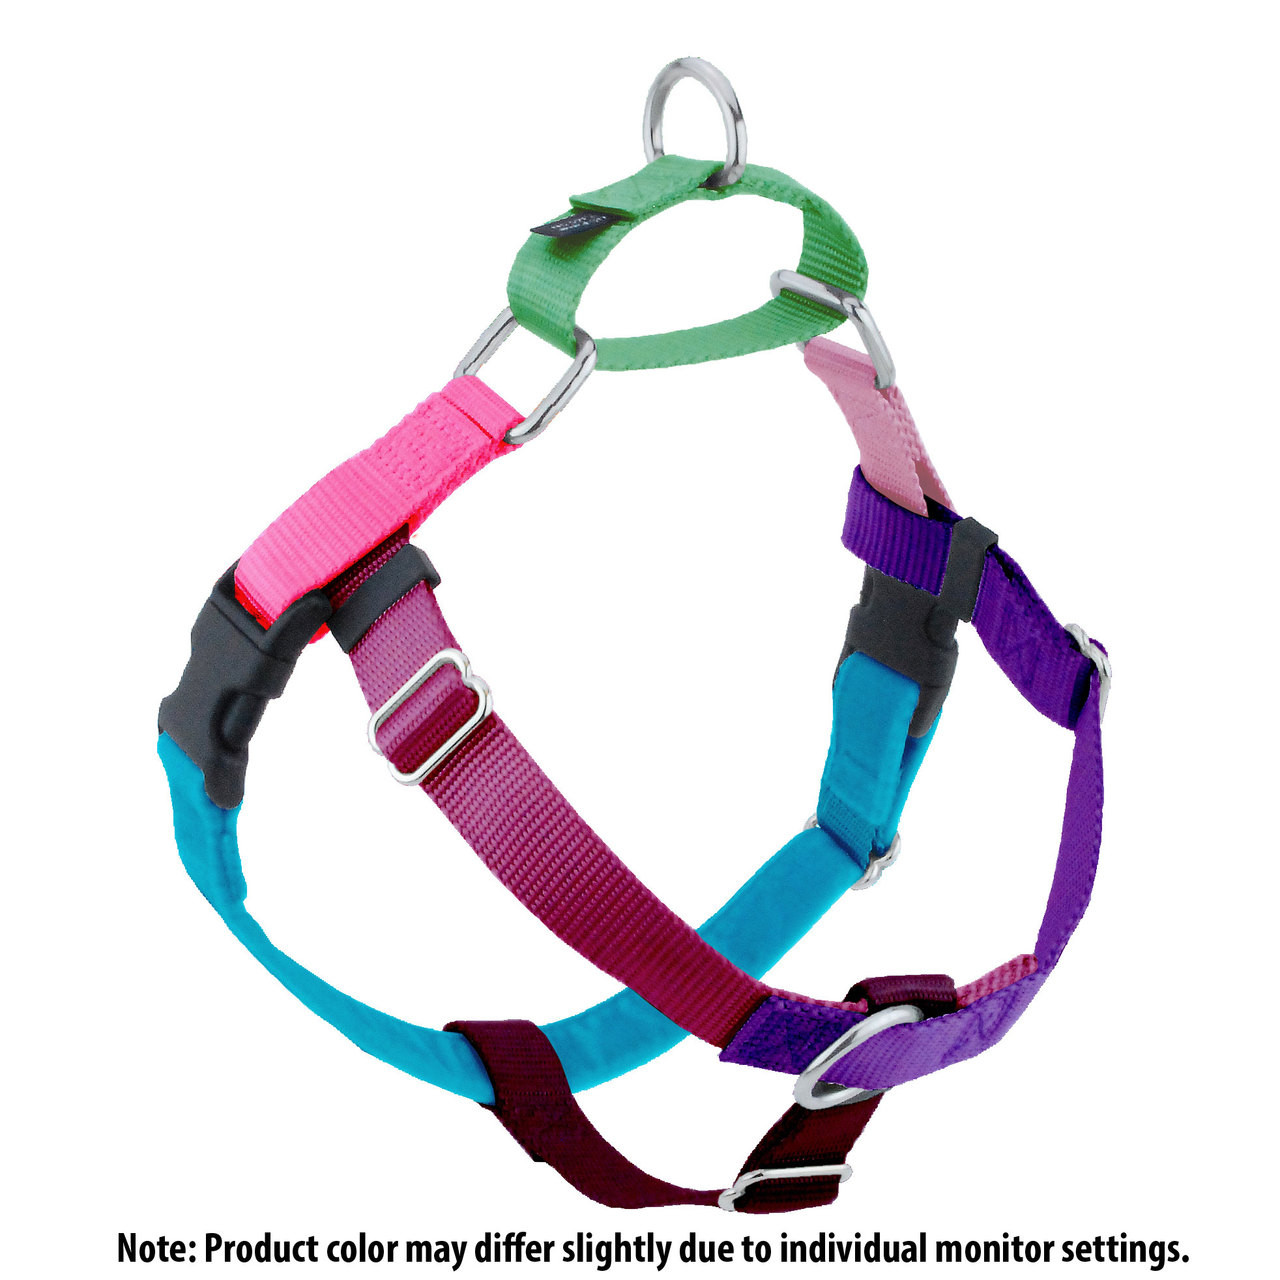 e93a16f64922 Jellybean Sugar Freedom No-Pull Dog Harness & Optional Leads | 2 Hounds at  Worthy Dog at Worthy Dog at PupRwear